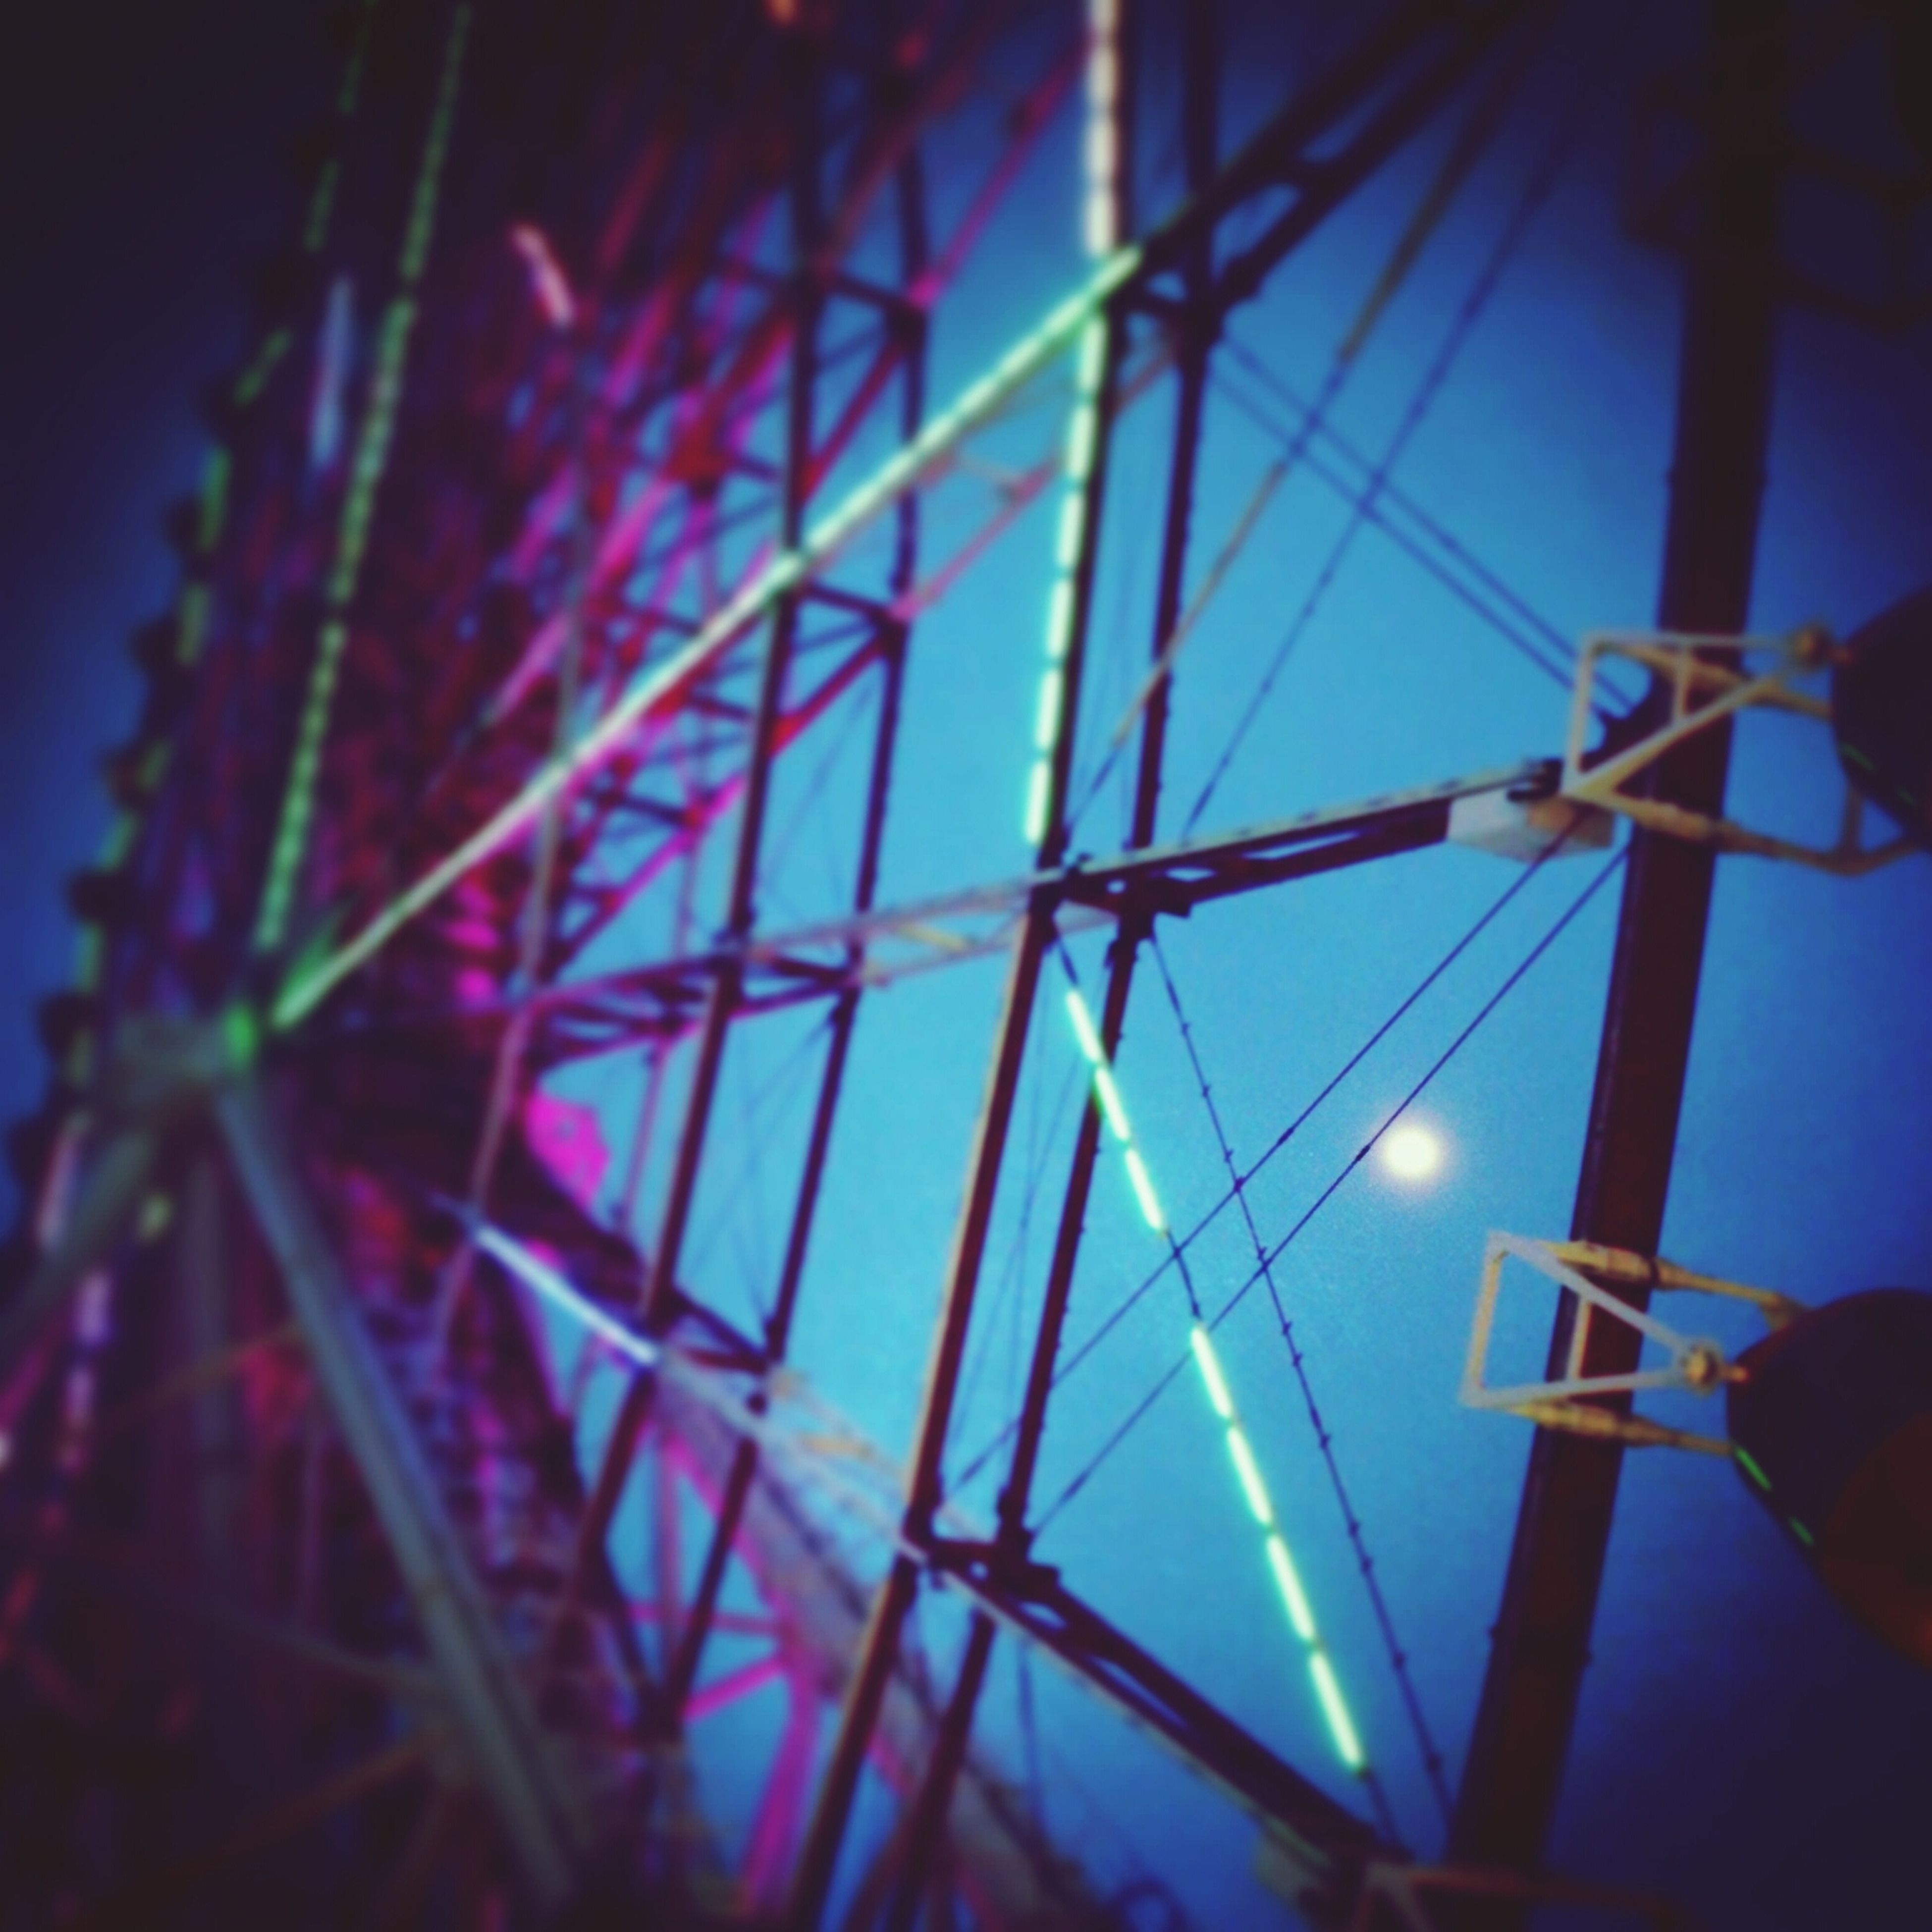 low angle view, illuminated, night, metal, silhouette, arts culture and entertainment, sky, indoors, blue, lighting equipment, dusk, close-up, part of, no people, built structure, cropped, metallic, clear sky, pattern